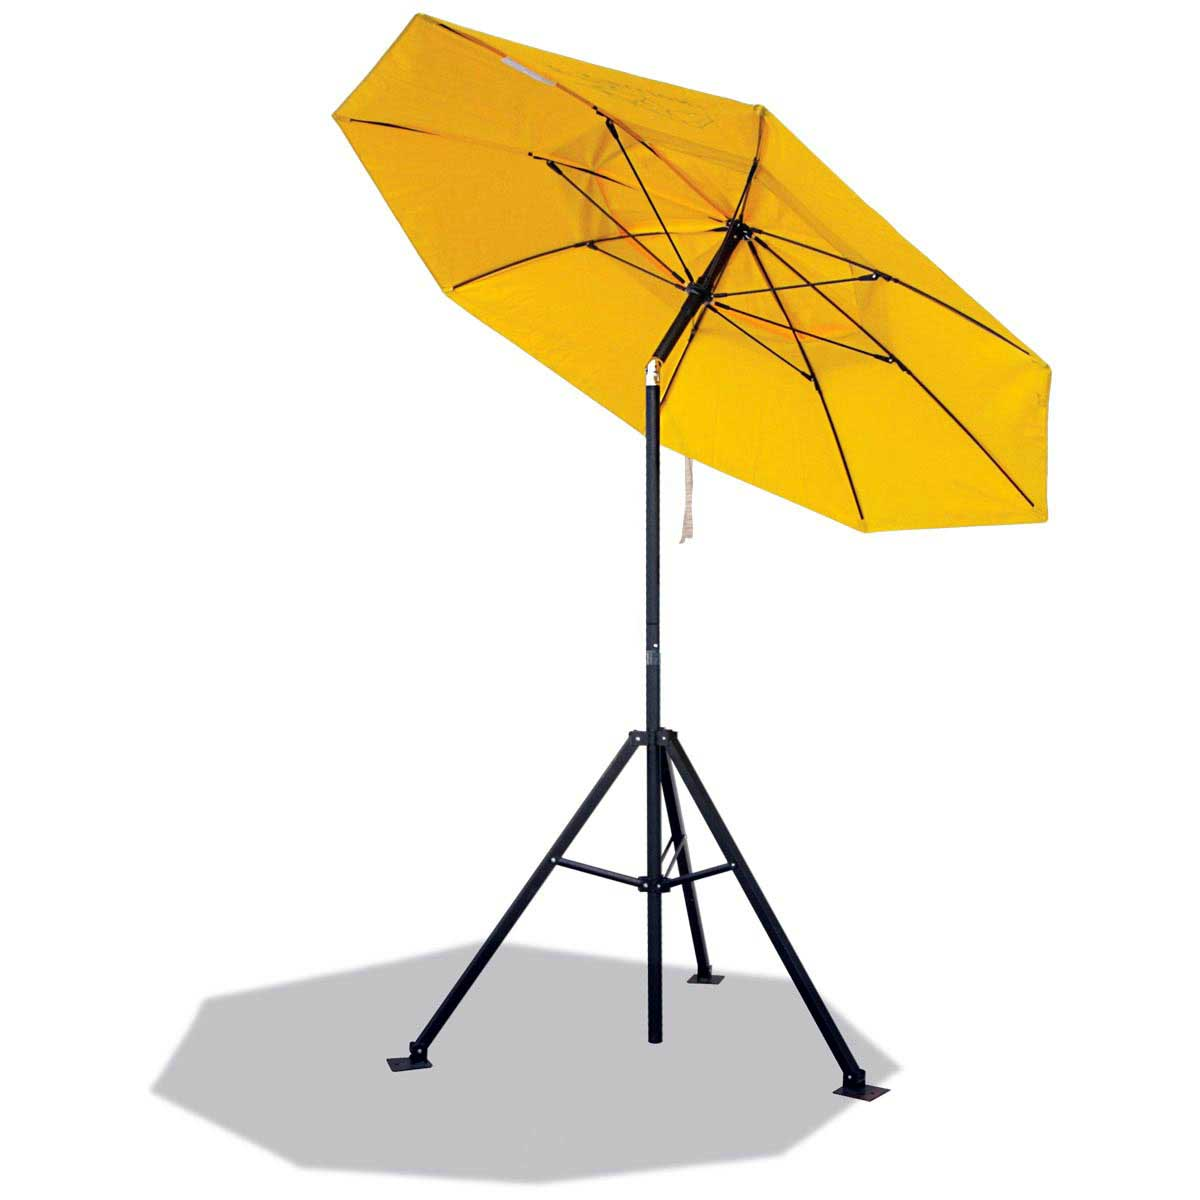 HEAVY DUTY FLAME RESISTANT INDUSTRIAL UMBRELLA (YELLOW). Pack 1. UB100